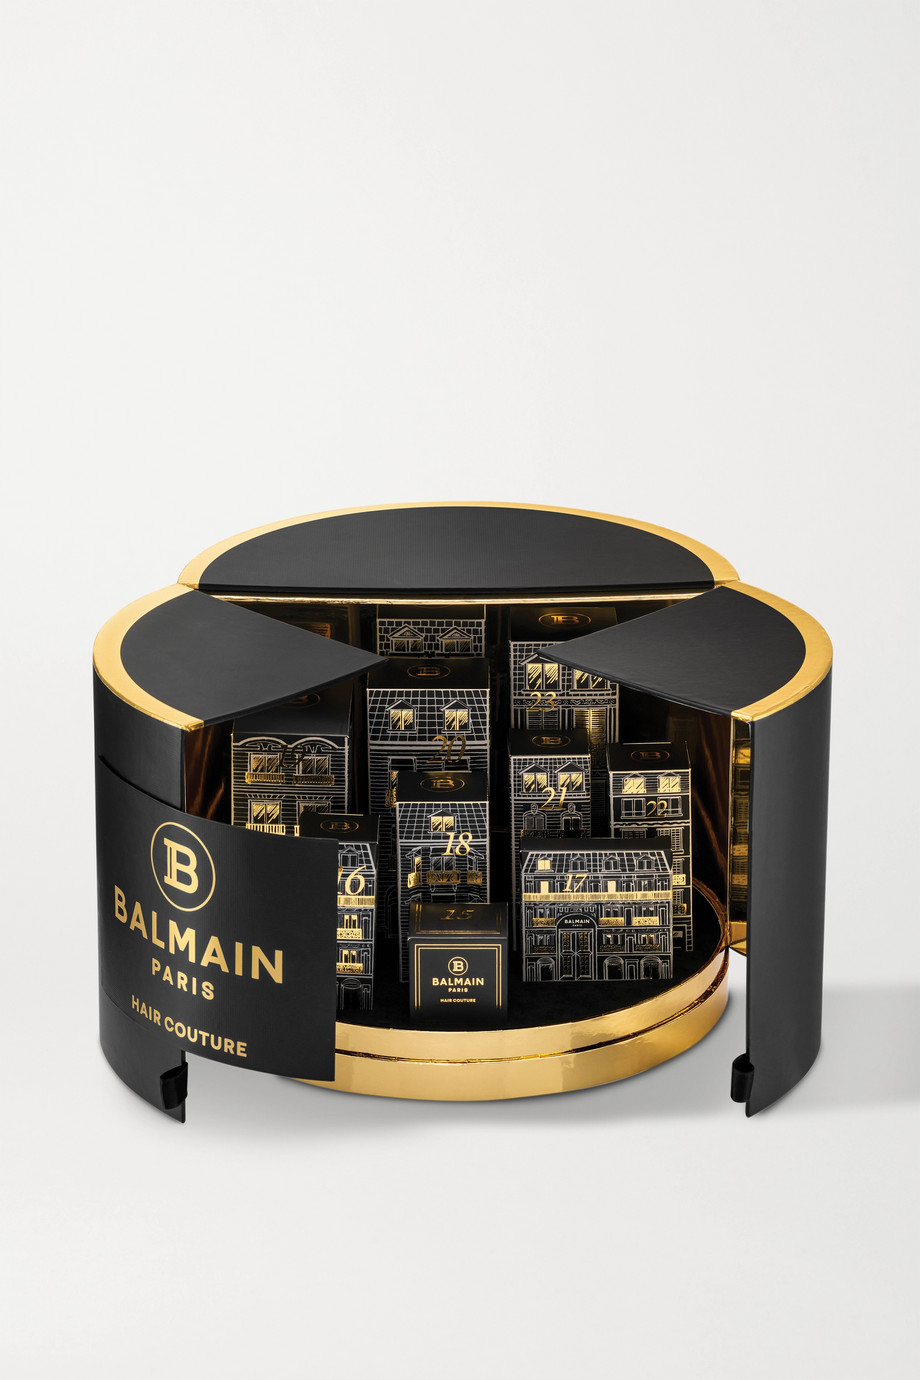 Balmain Paris Hair Couture Coffret cadeau The City of Lights